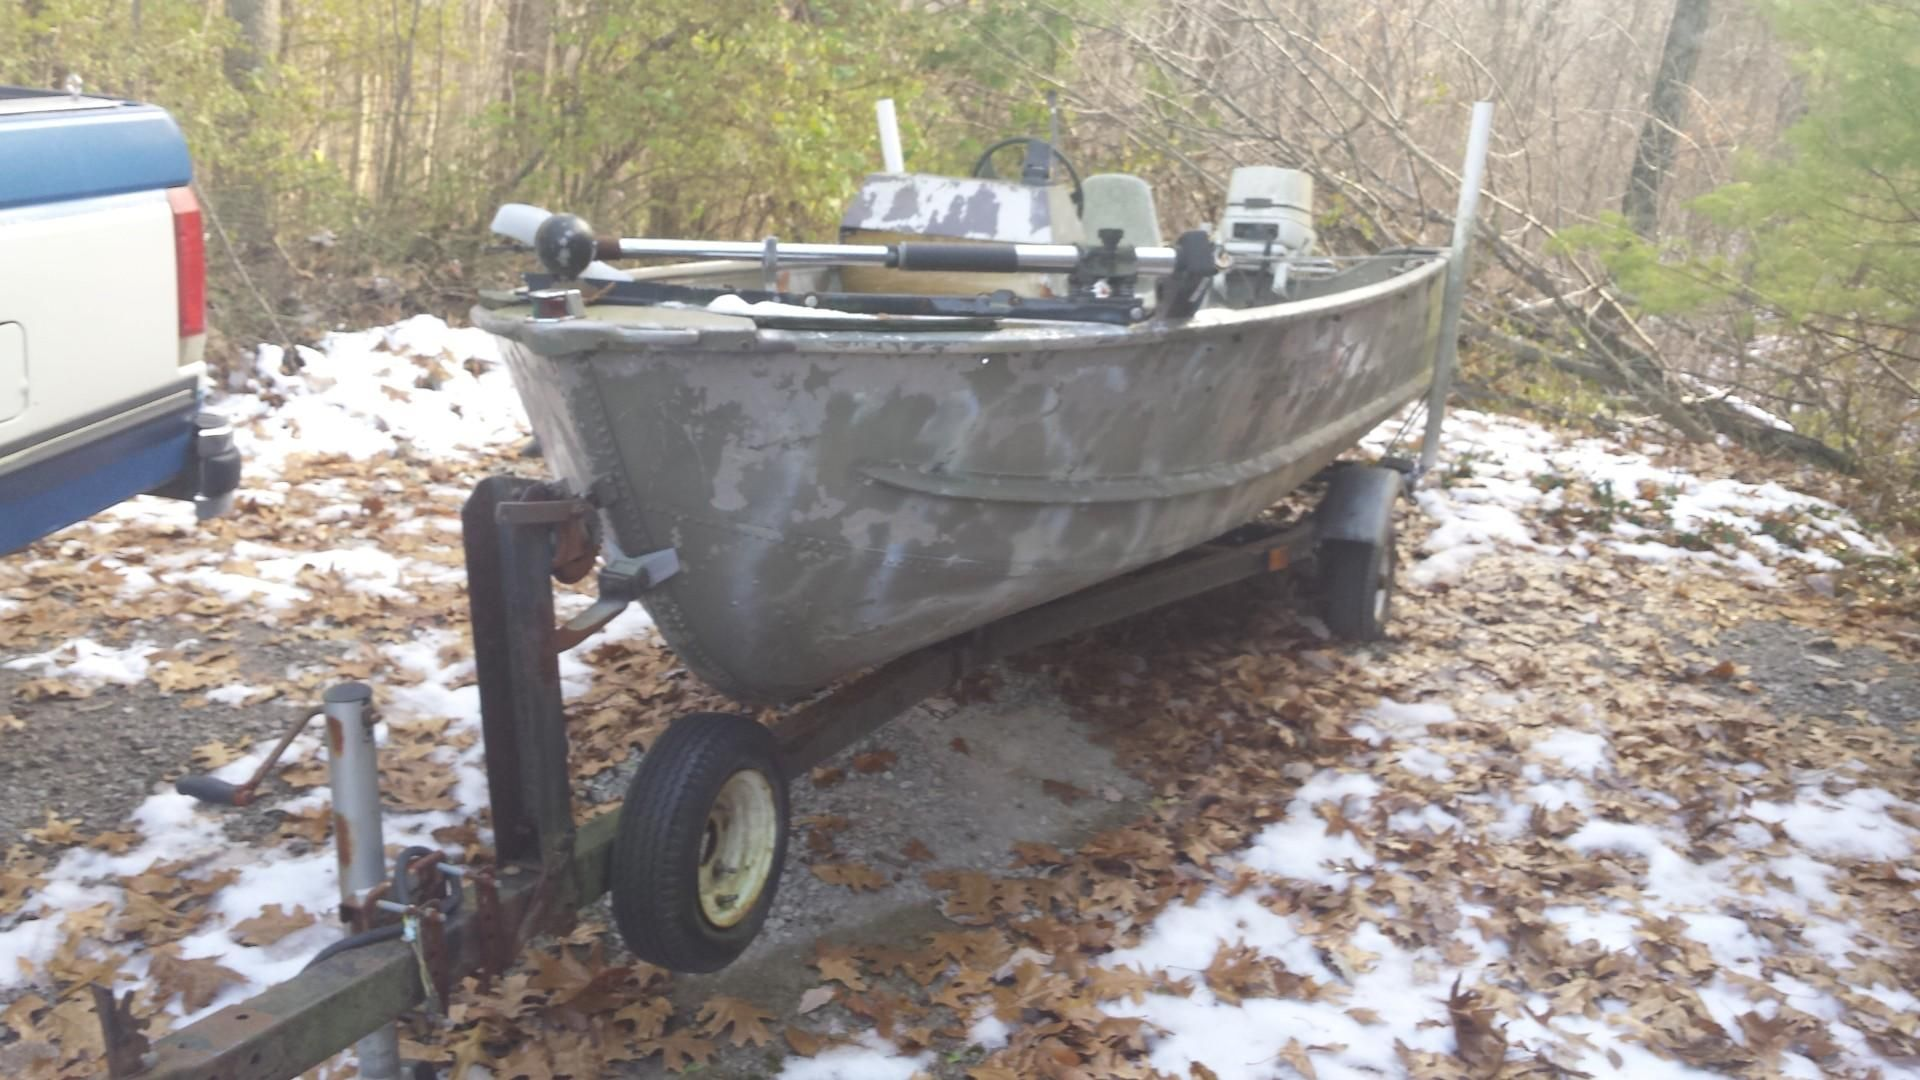 DIY Home Decorations Blog  Think I can just do campers? Rebuilt a 1984 14 foot Sea Nymph Boat and Johnson Motor that had been sitting for a decade.  http://ift.tt/2pGXmAt